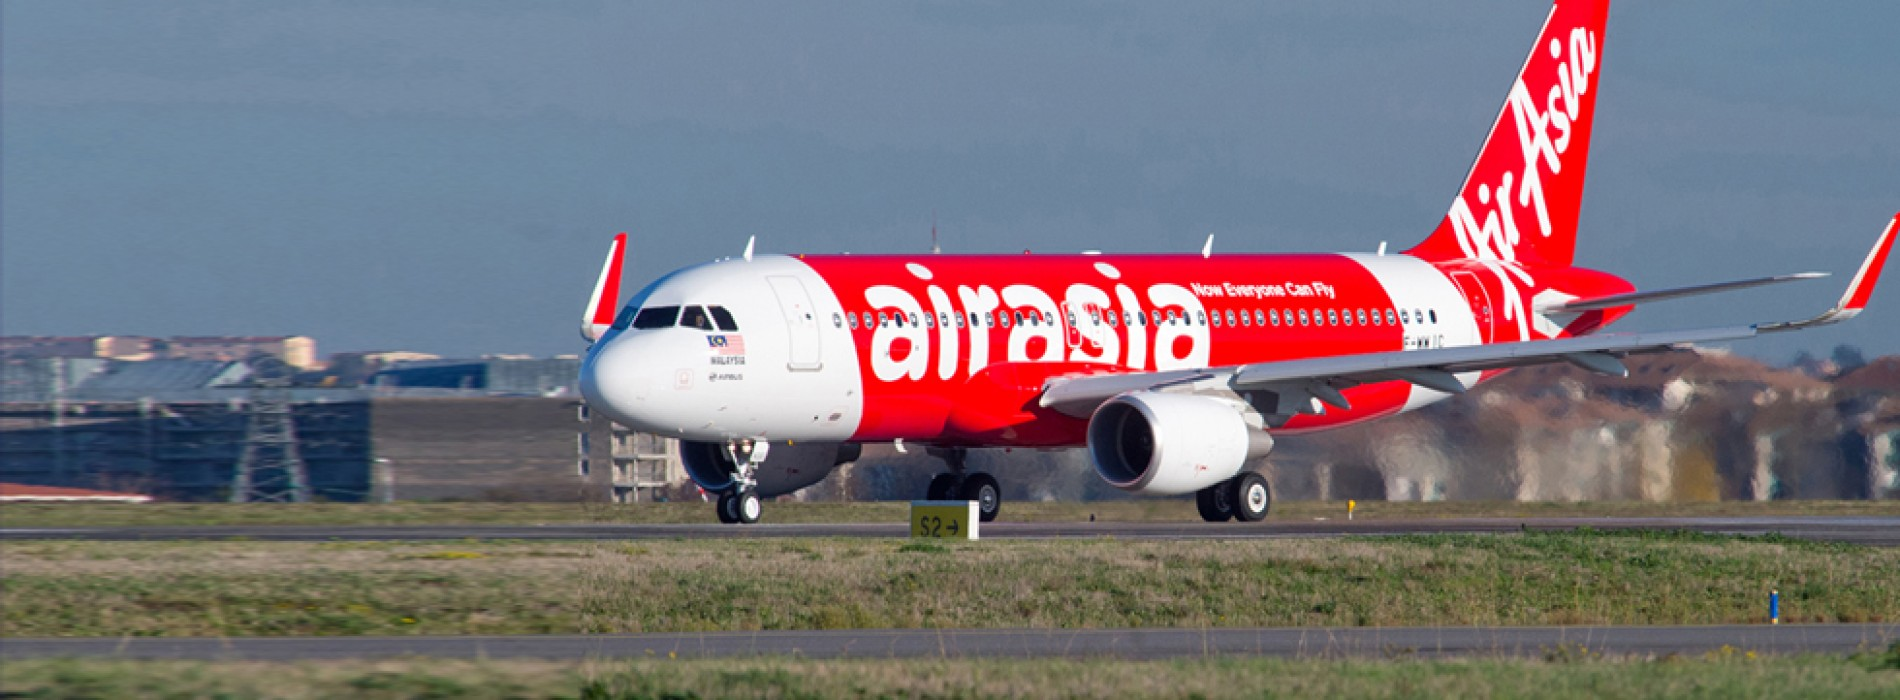 AirAsia India adds one A320 aircraft to launch three new routes